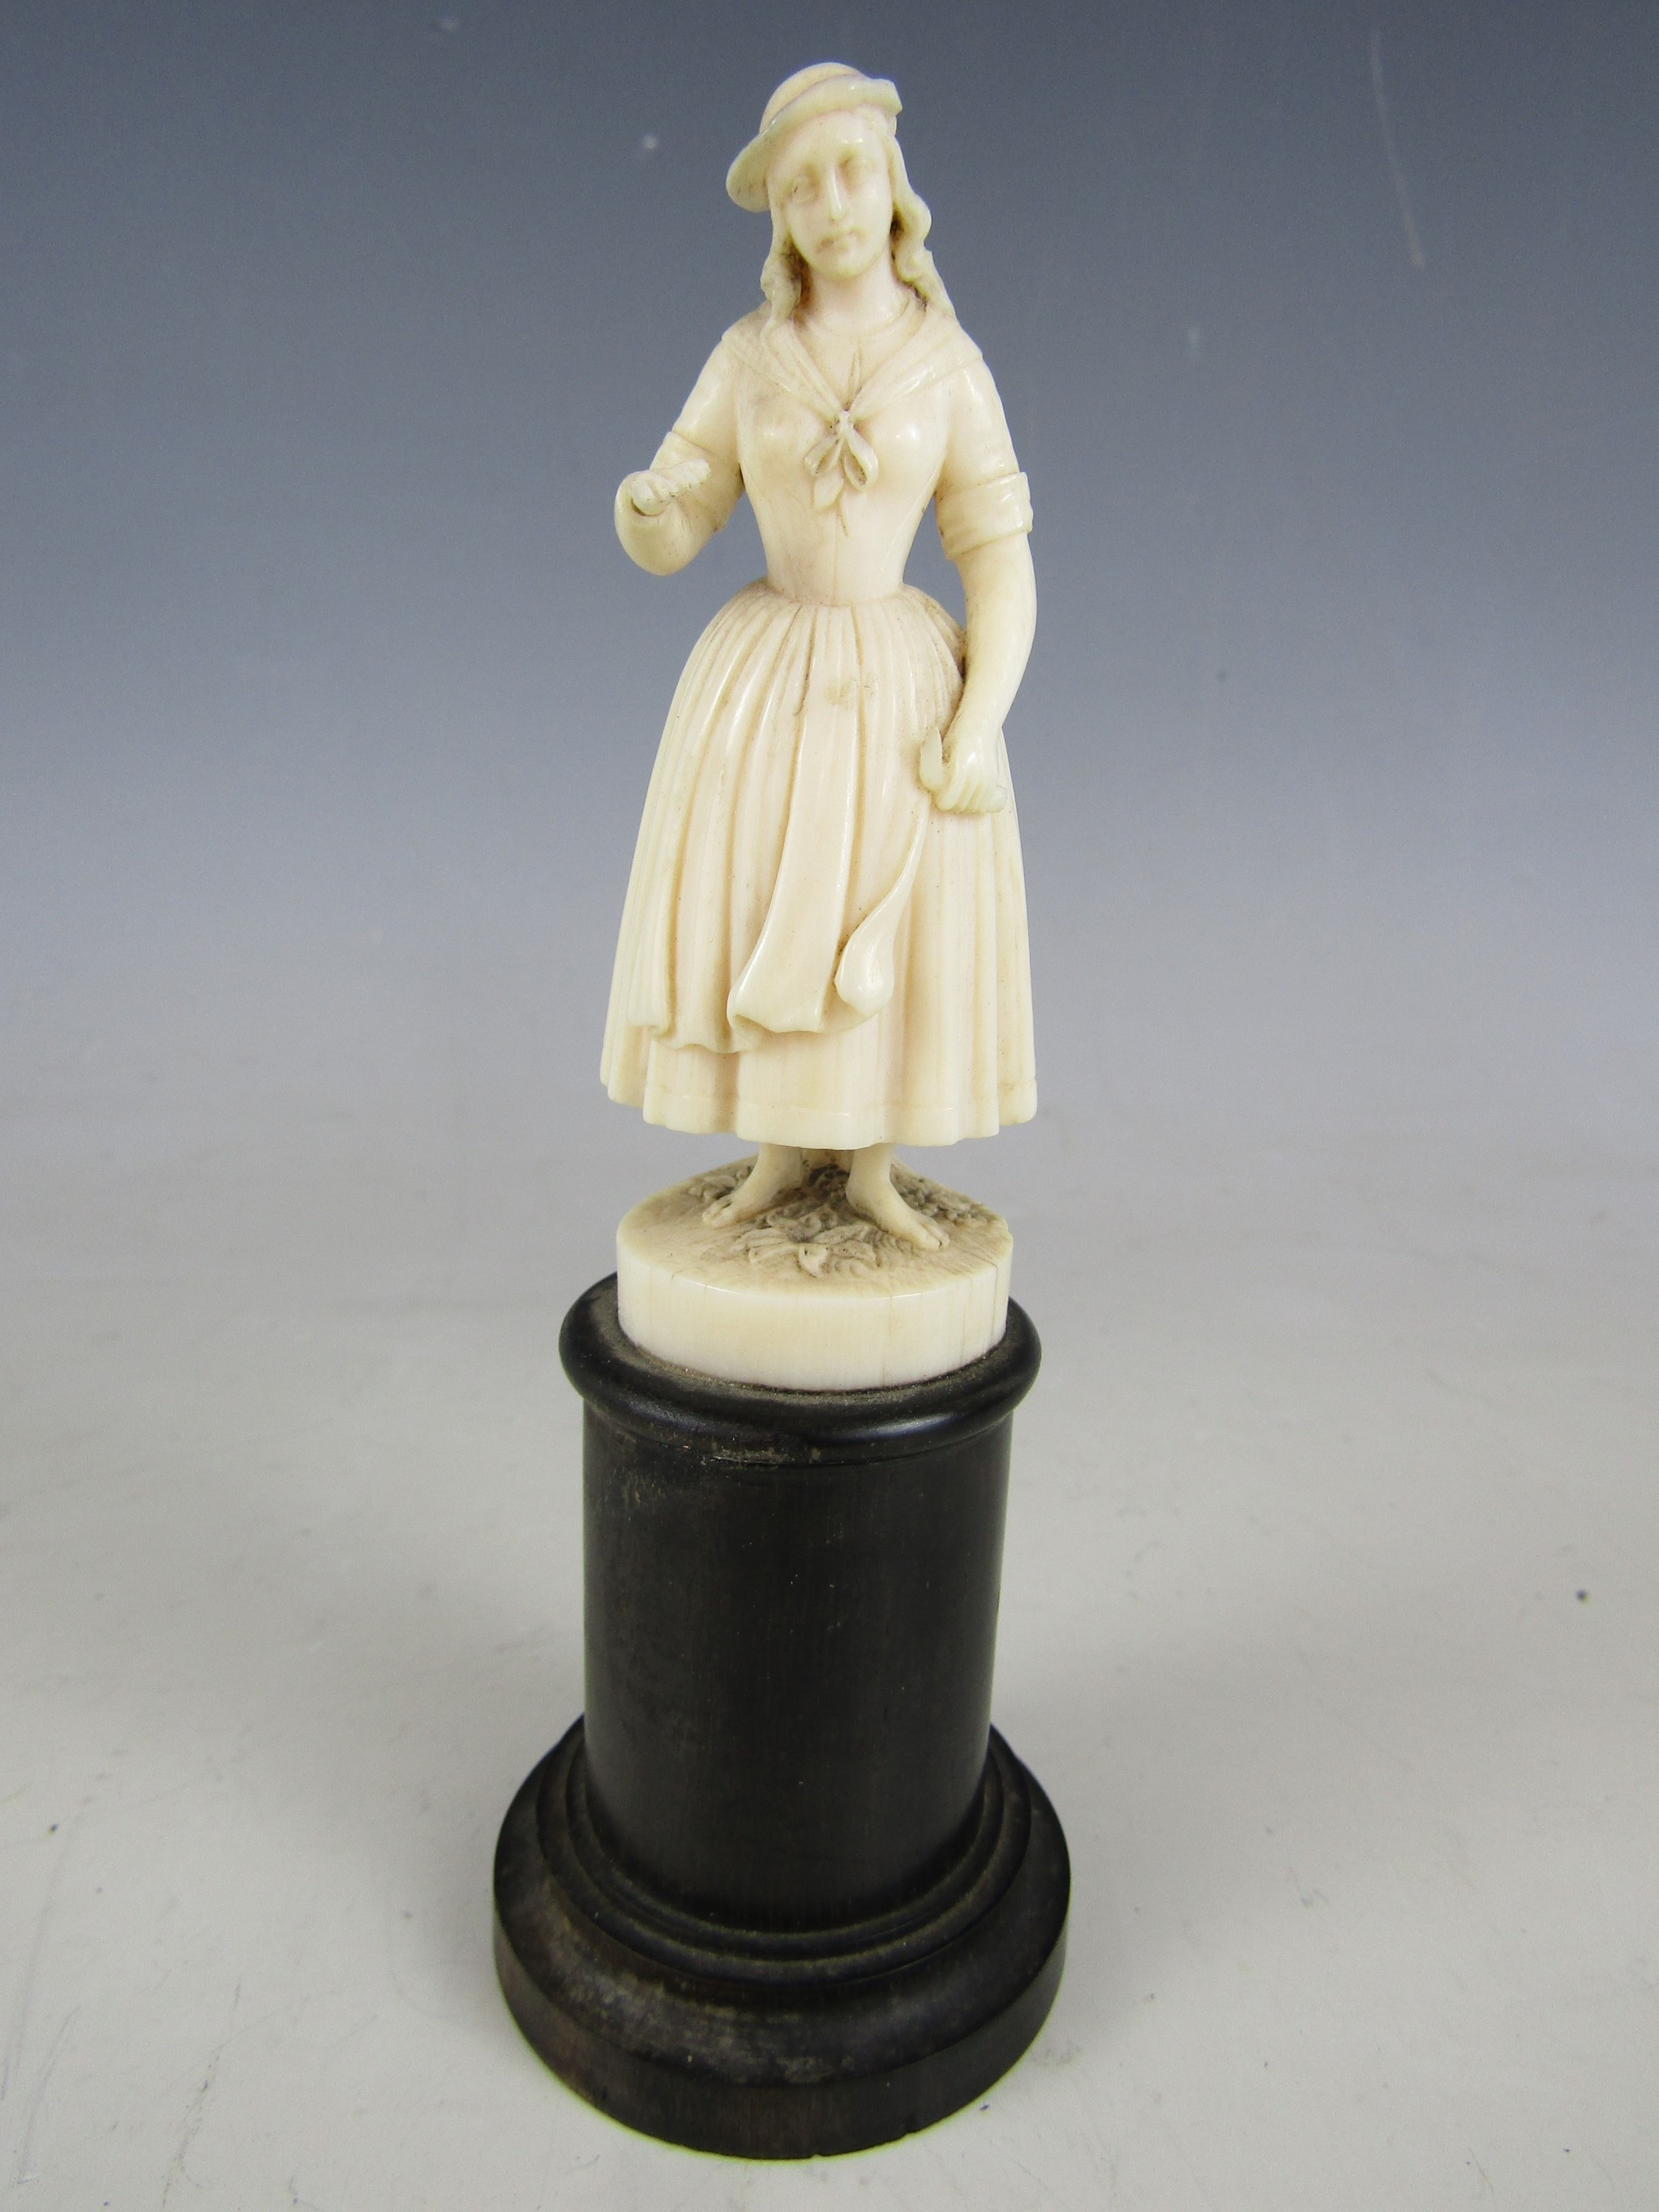 Lot 19 - A finely carved ivory statuette of an 18th Century peasant girl, on a turned ebony socle, 19th